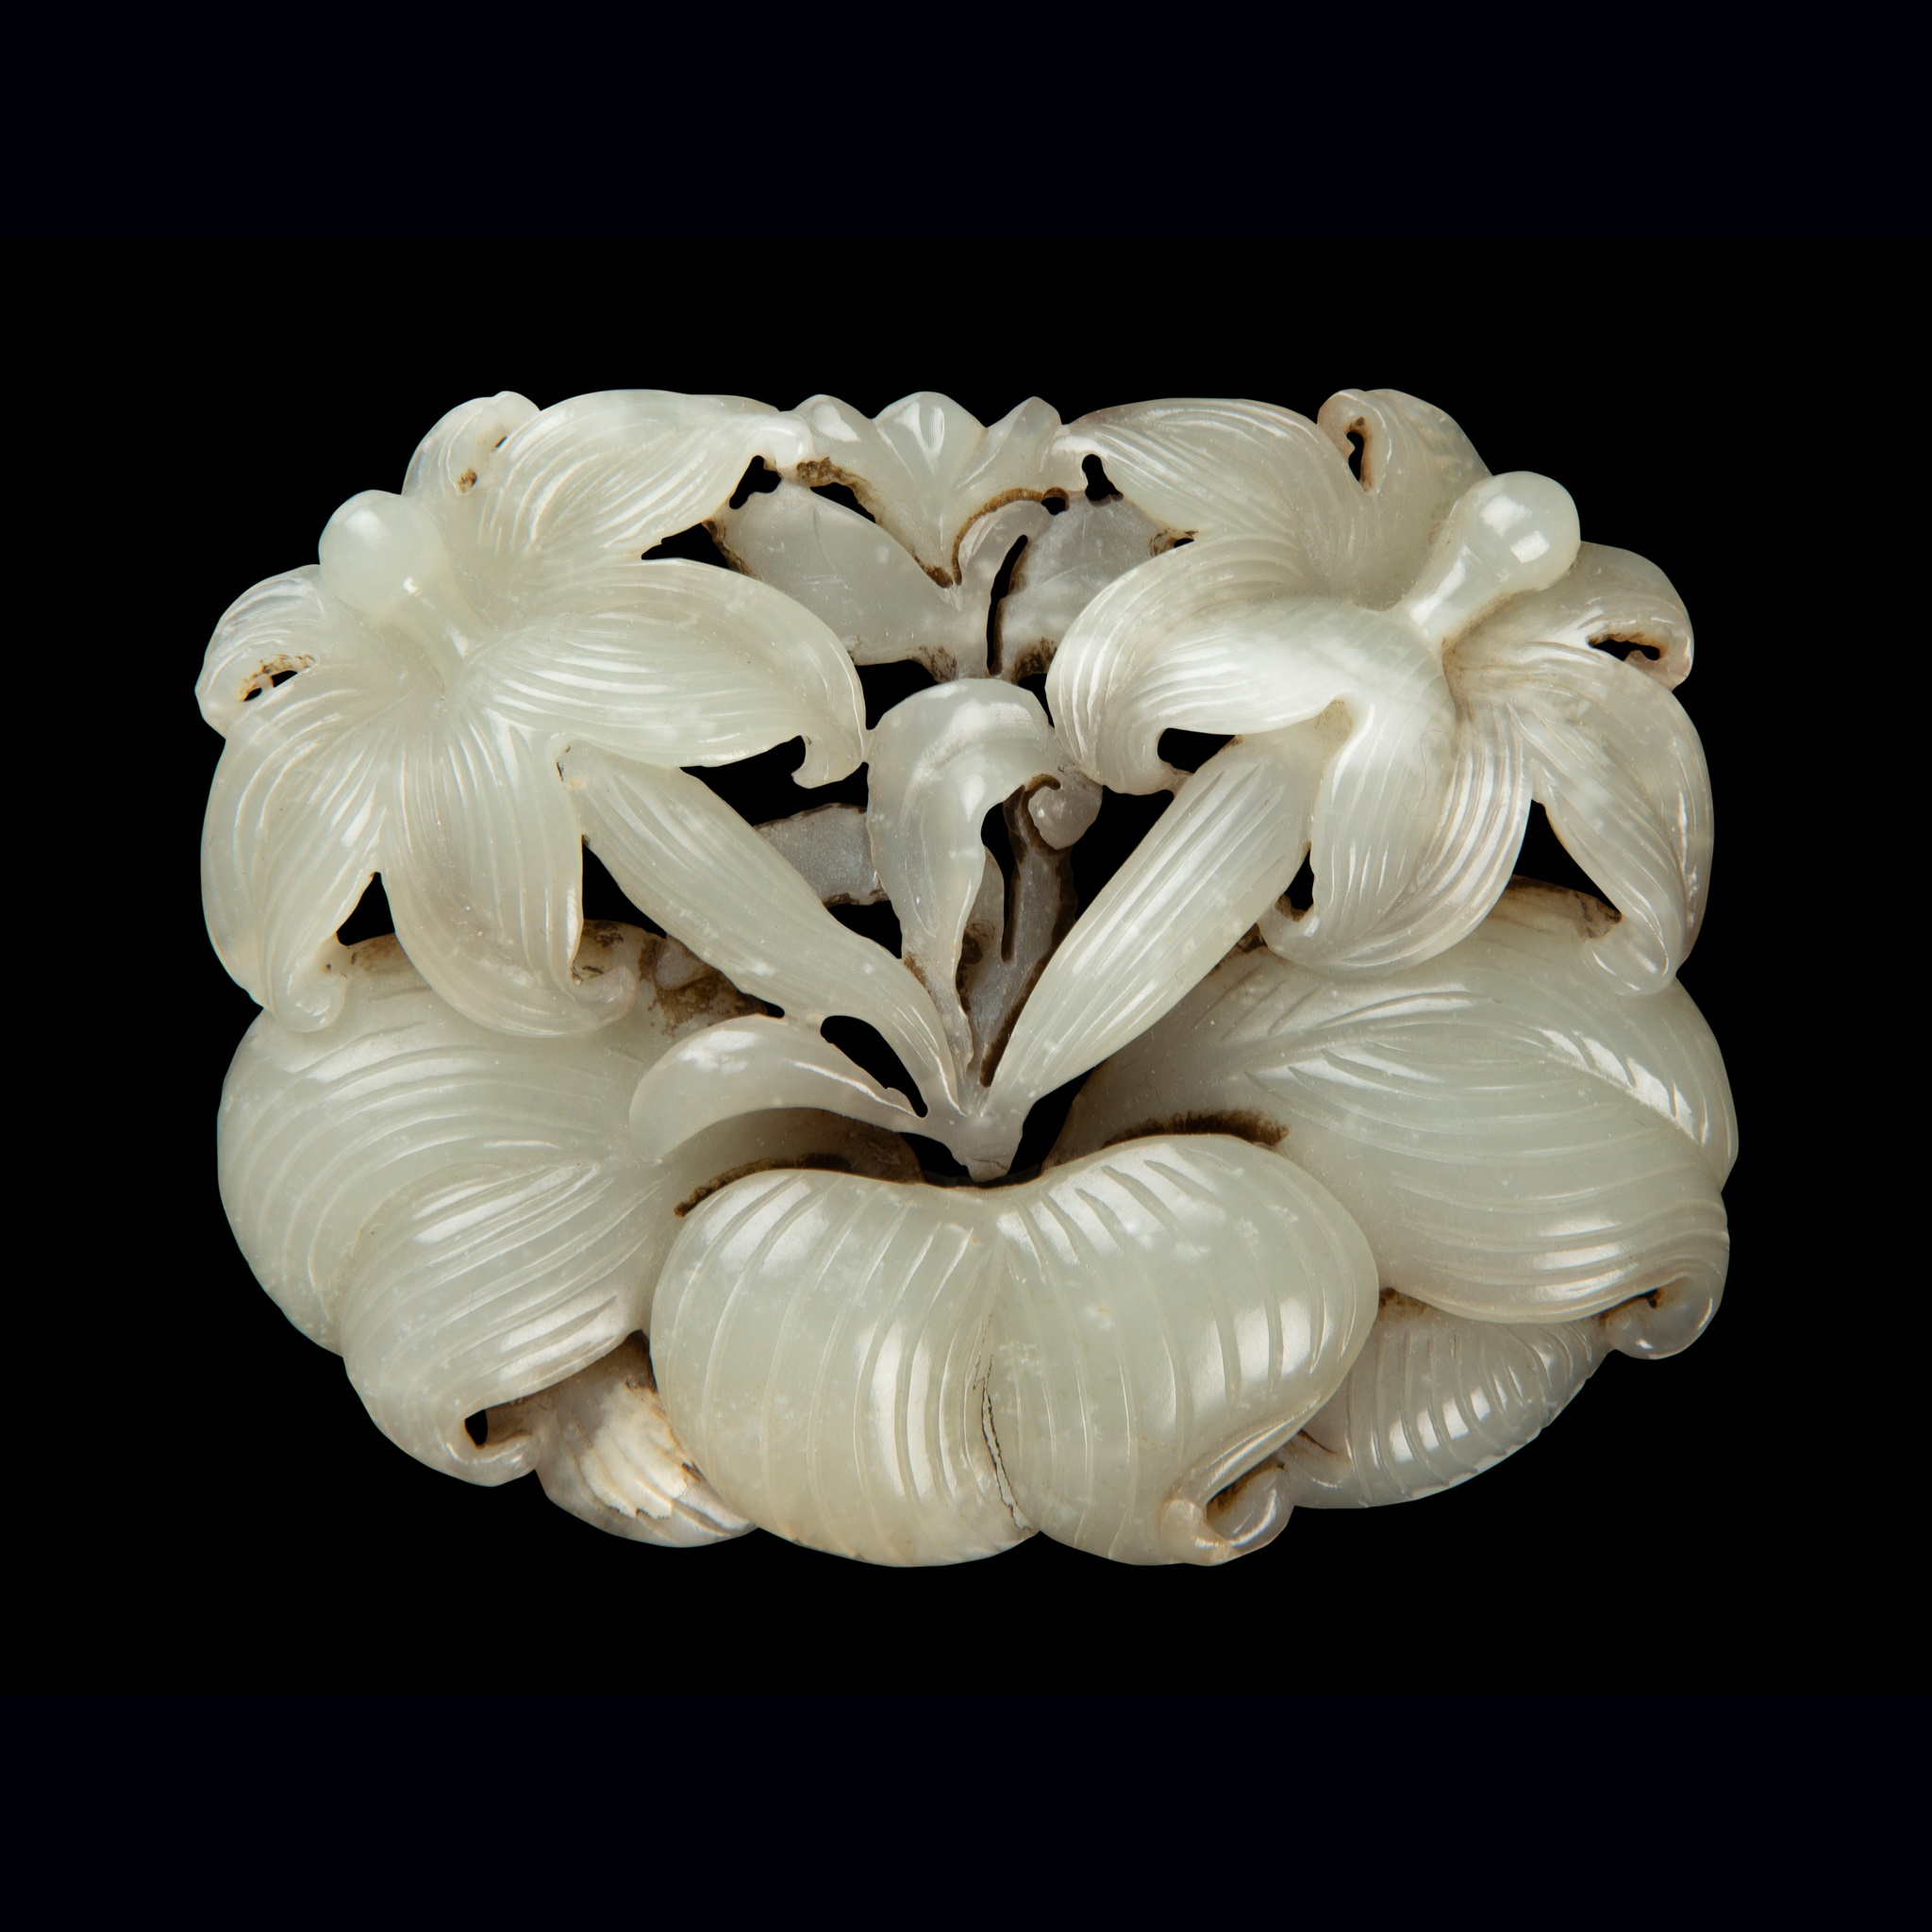 RARE WHITE JADE 'DAYLILY' PENDANT | JIN DYNASTY, 12TH CENTURY, Provenance: Private English collection, acquired from UK market about 10 years ago; possibly sold to the UK market during the mid-20th century for earning foreign currency Note: a closely comparable example, dated to the Jin dynasty, is in the collection of the National Museum of China, 7.5cm wide